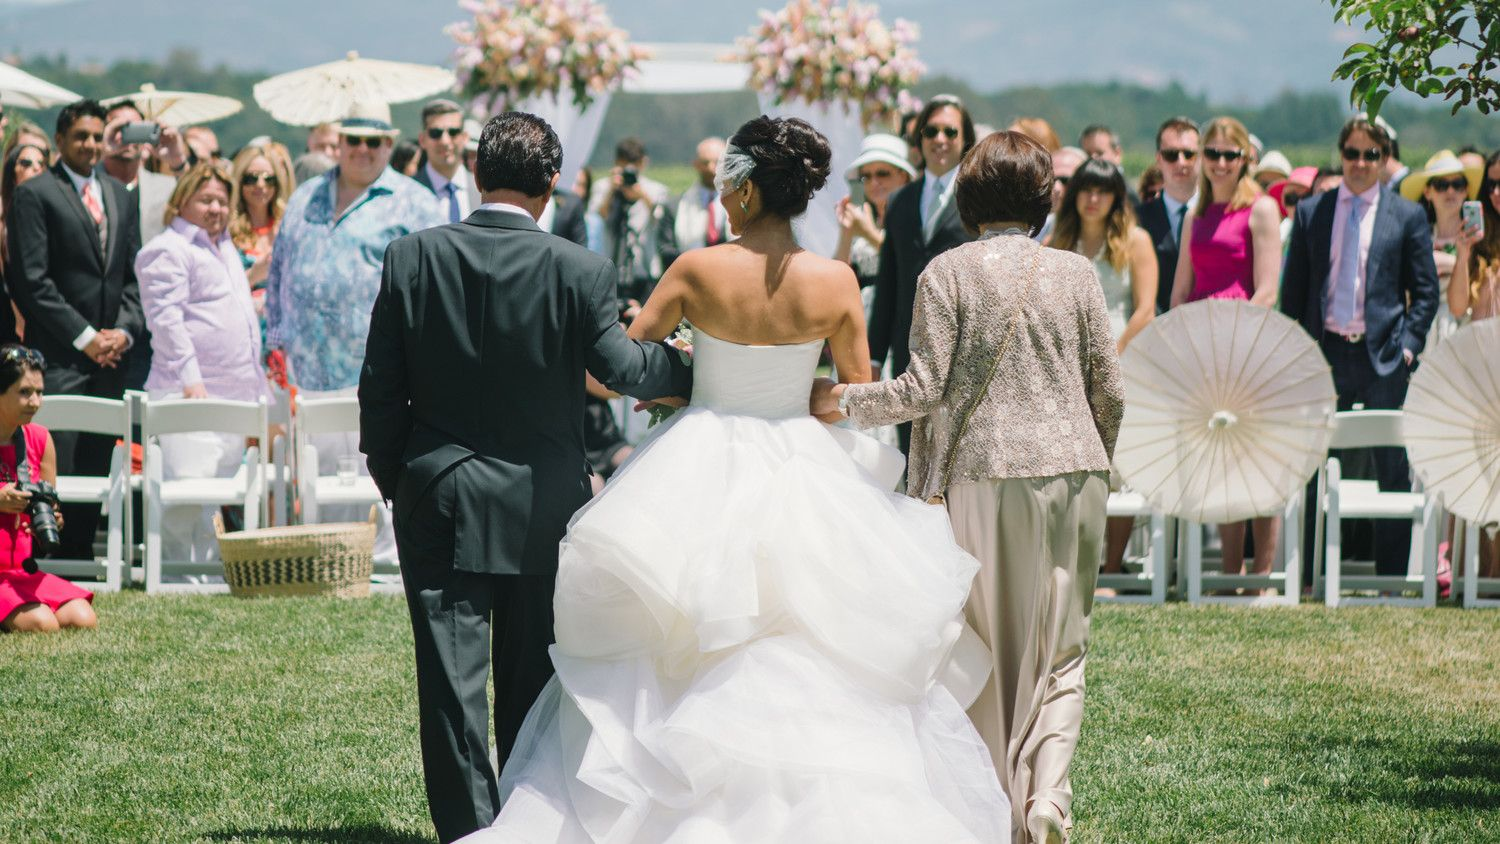 100 Instrumental Wedding Songs to Walk Down the Aisle To